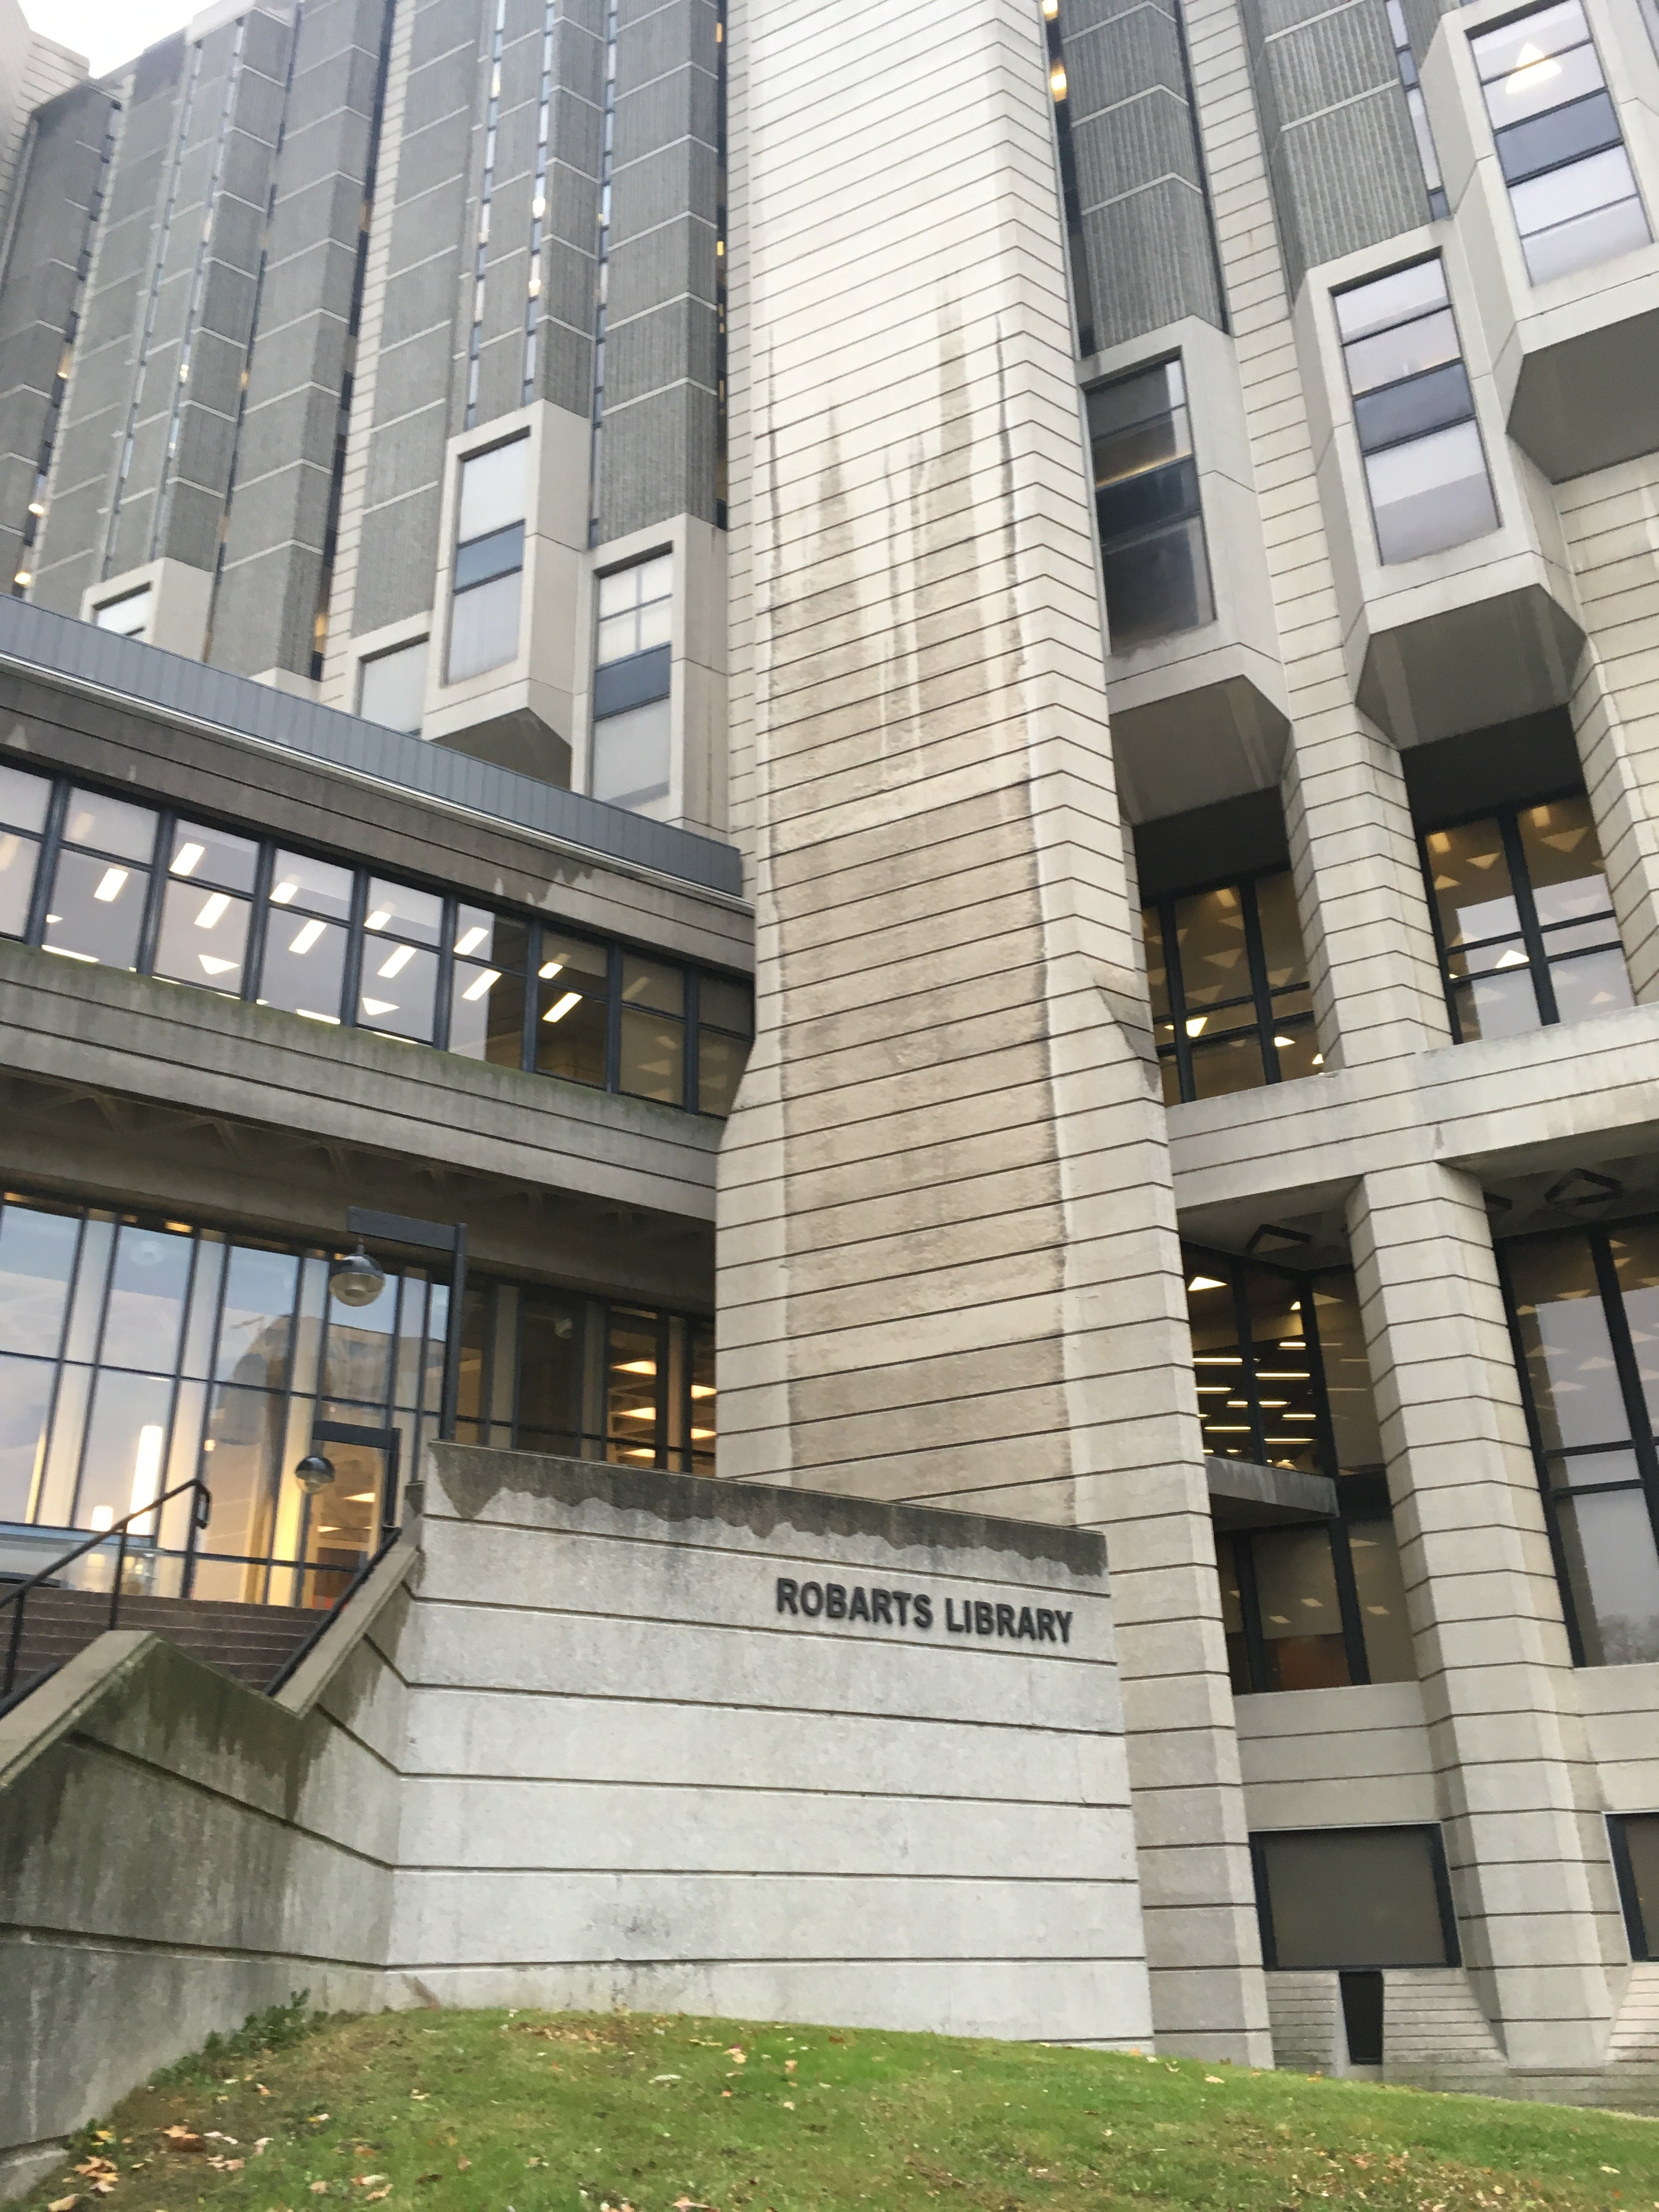 Photo of Robarts Library, University of Toronto